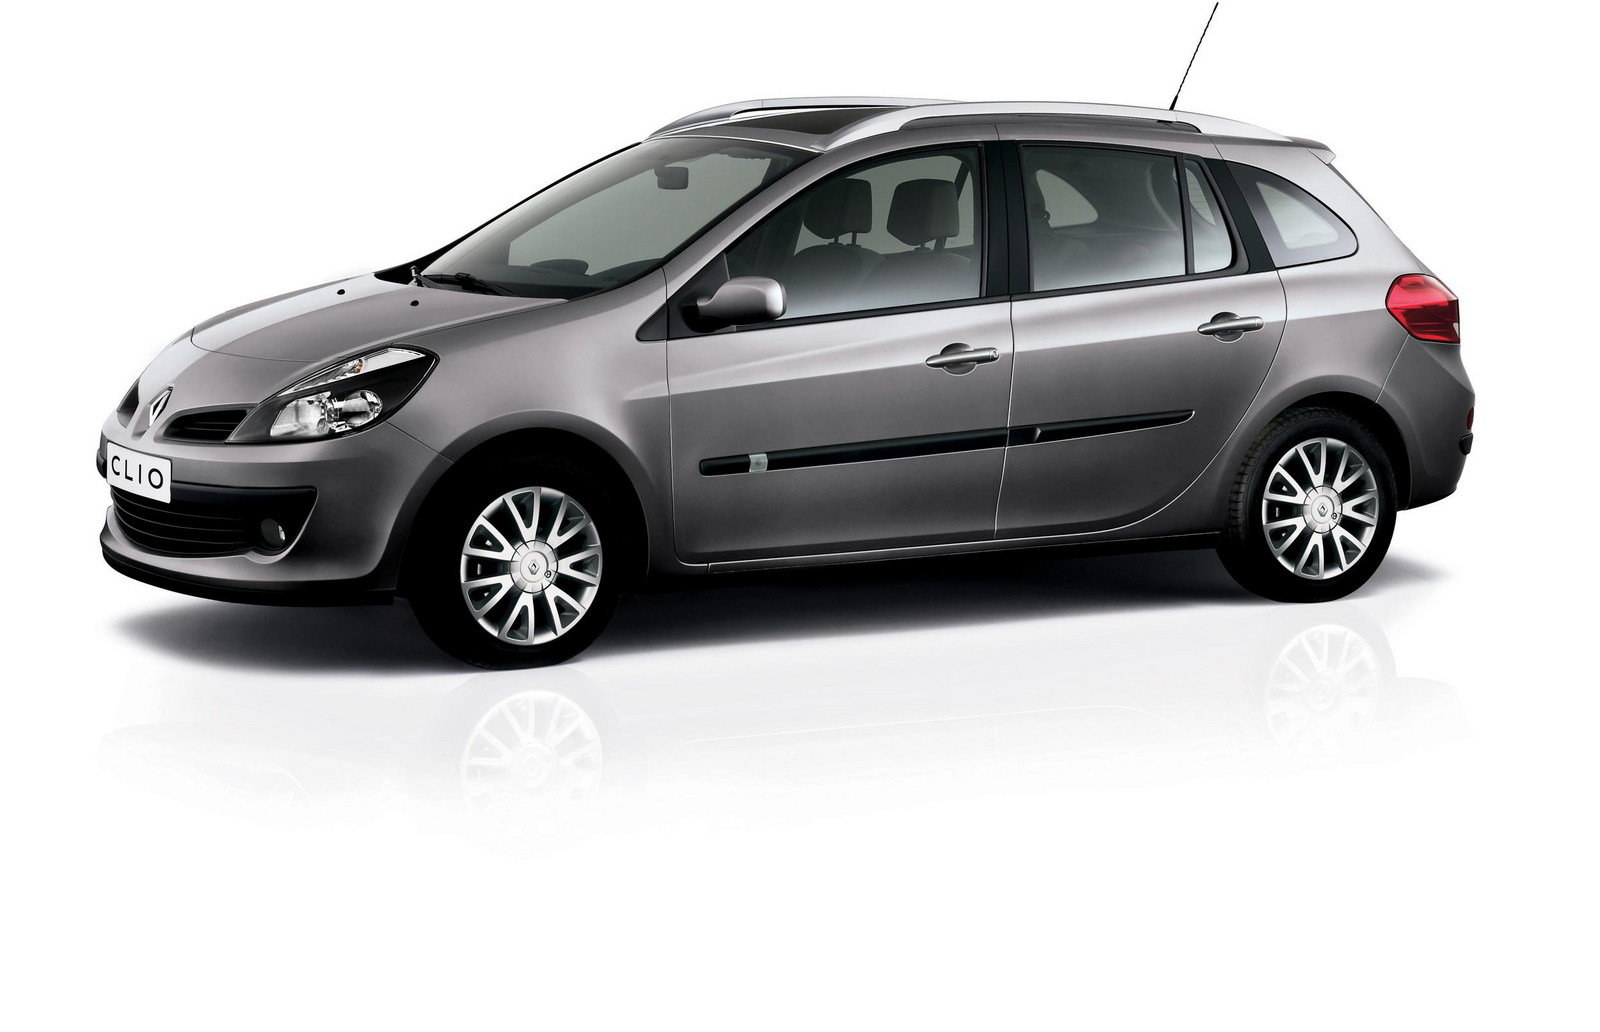 2009 renault clio estate exception review top speed. Black Bedroom Furniture Sets. Home Design Ideas